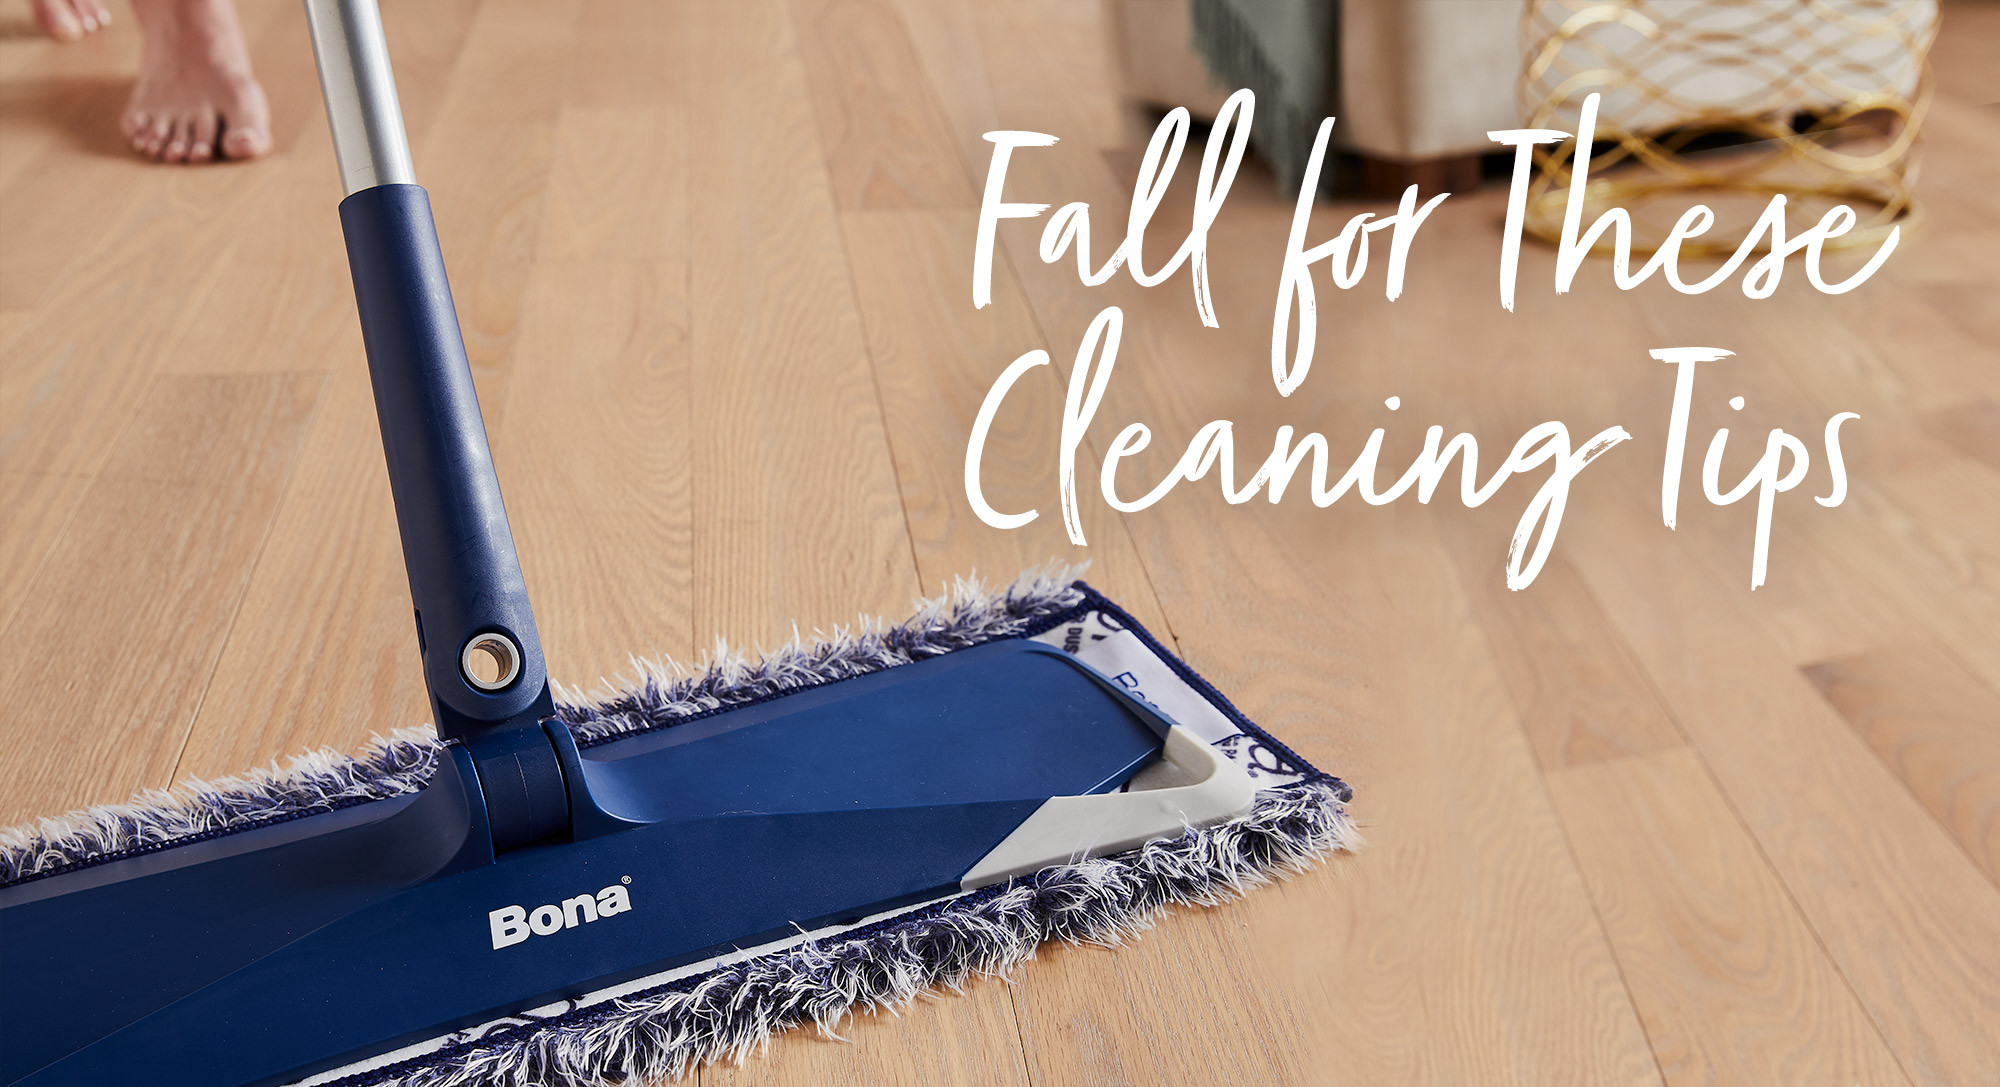 Hardwood Floor Cleaning Portland or Of Home Bona Us Intended for Fall Feature2